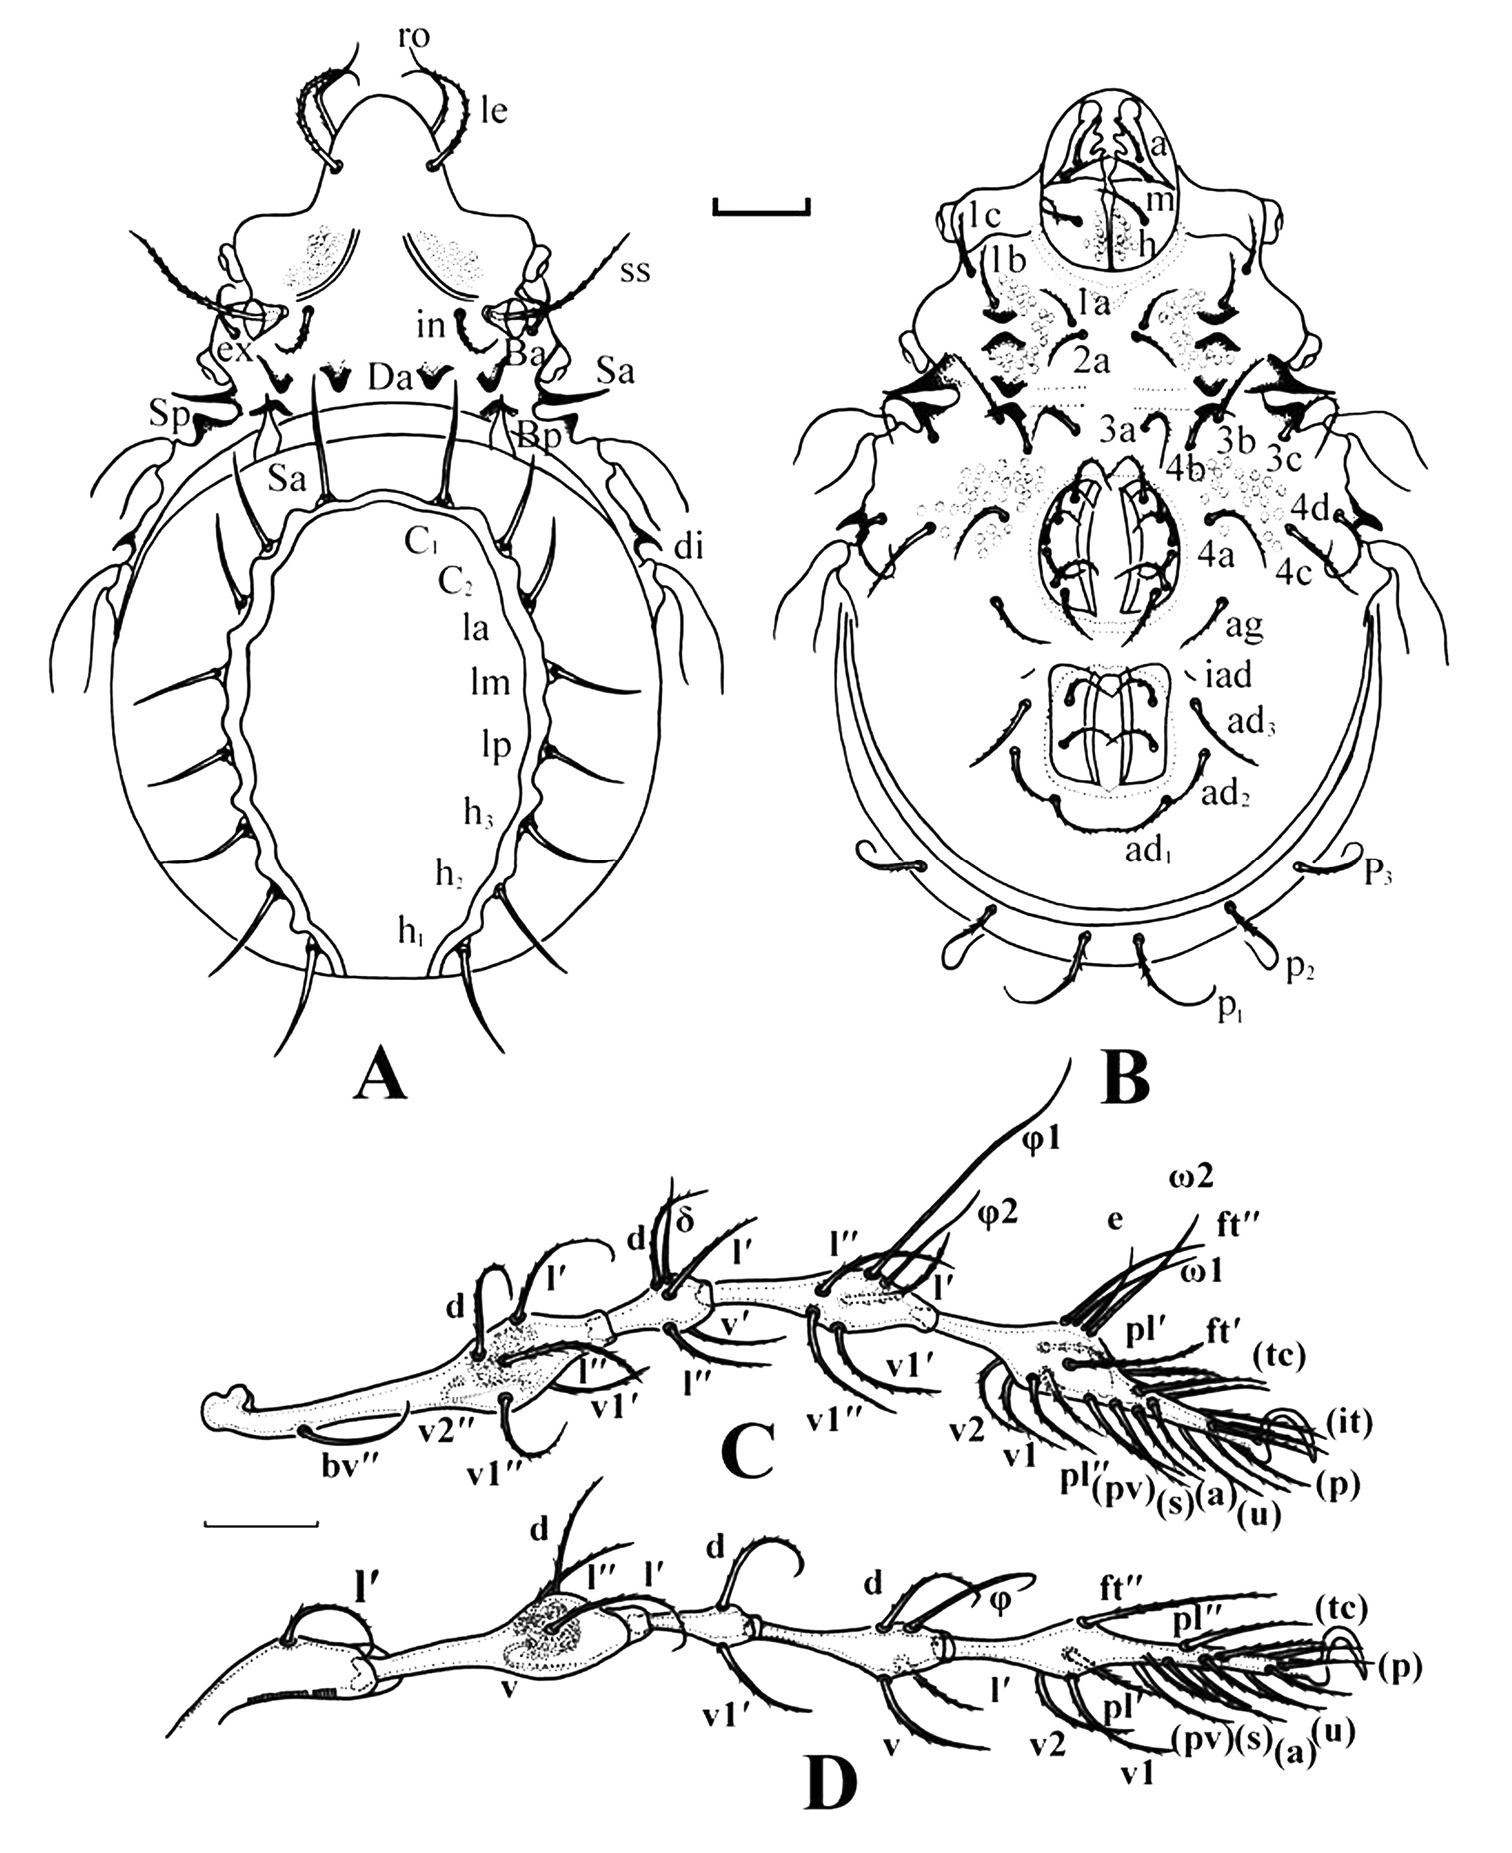 A adult, dorsal view (100 μm) B adult, ventral view (100 μm) C leg I (100 ...